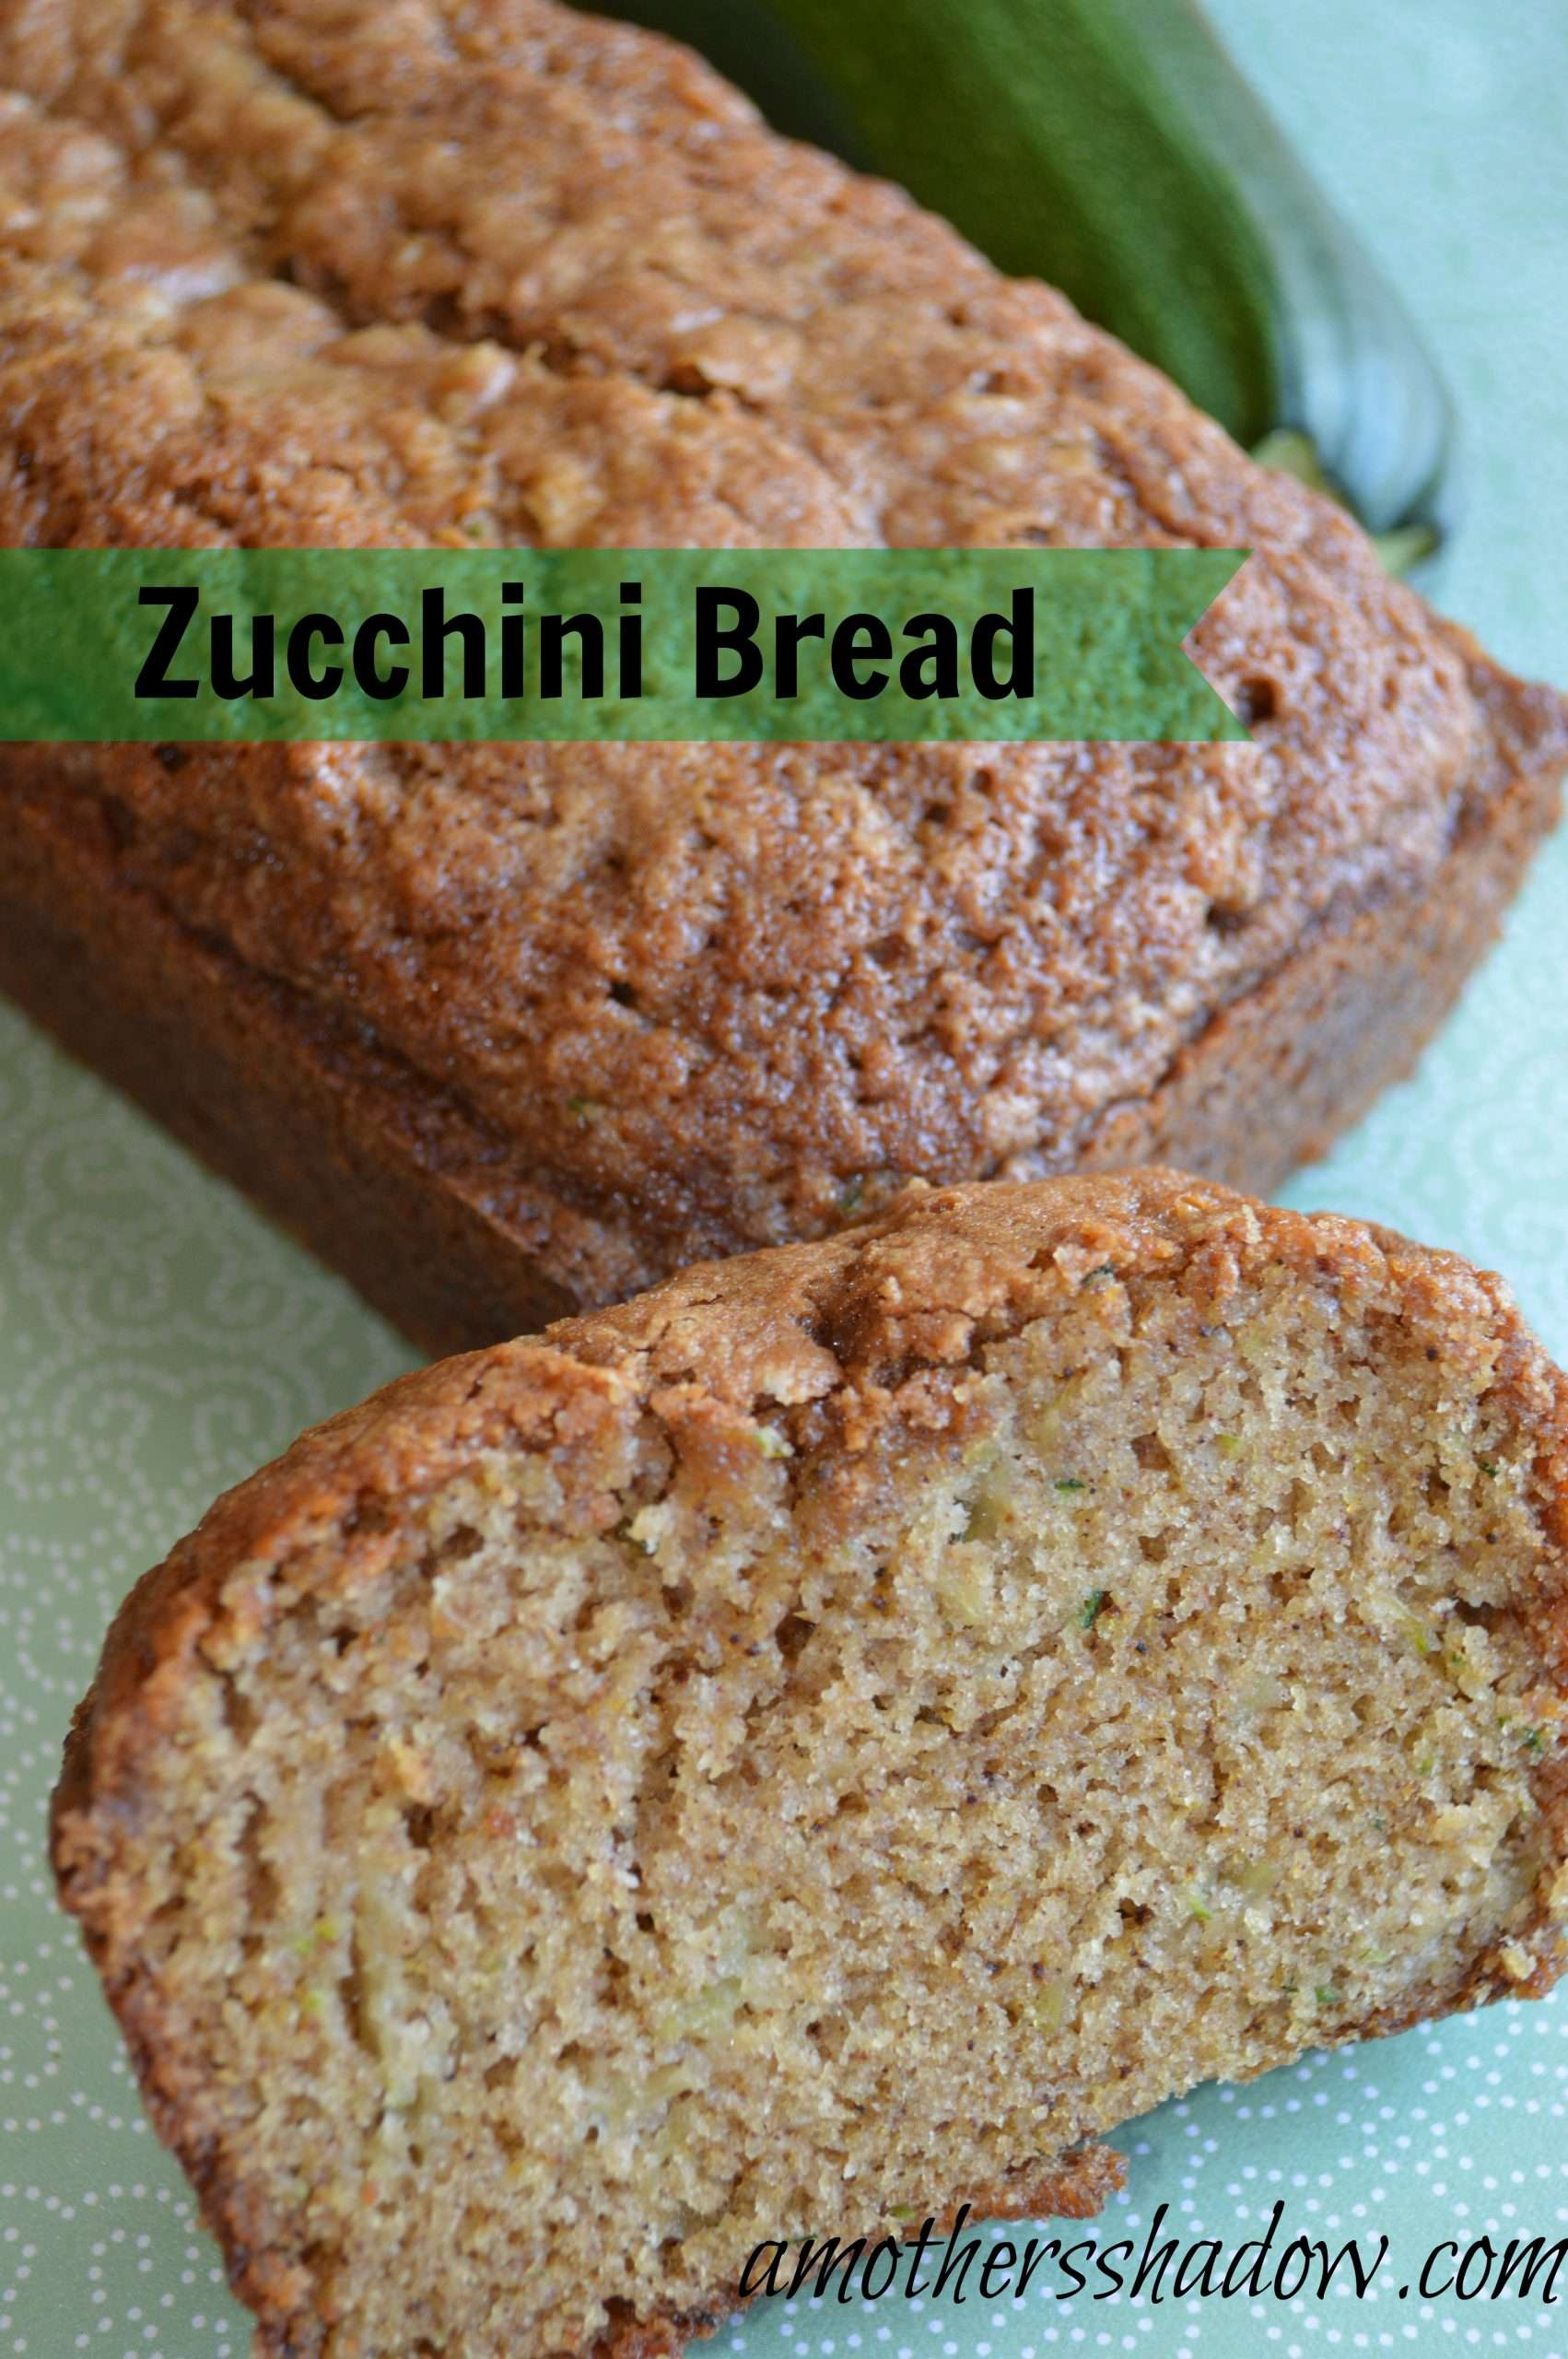 AMAZING flavorful and Tender Zucchini Bread